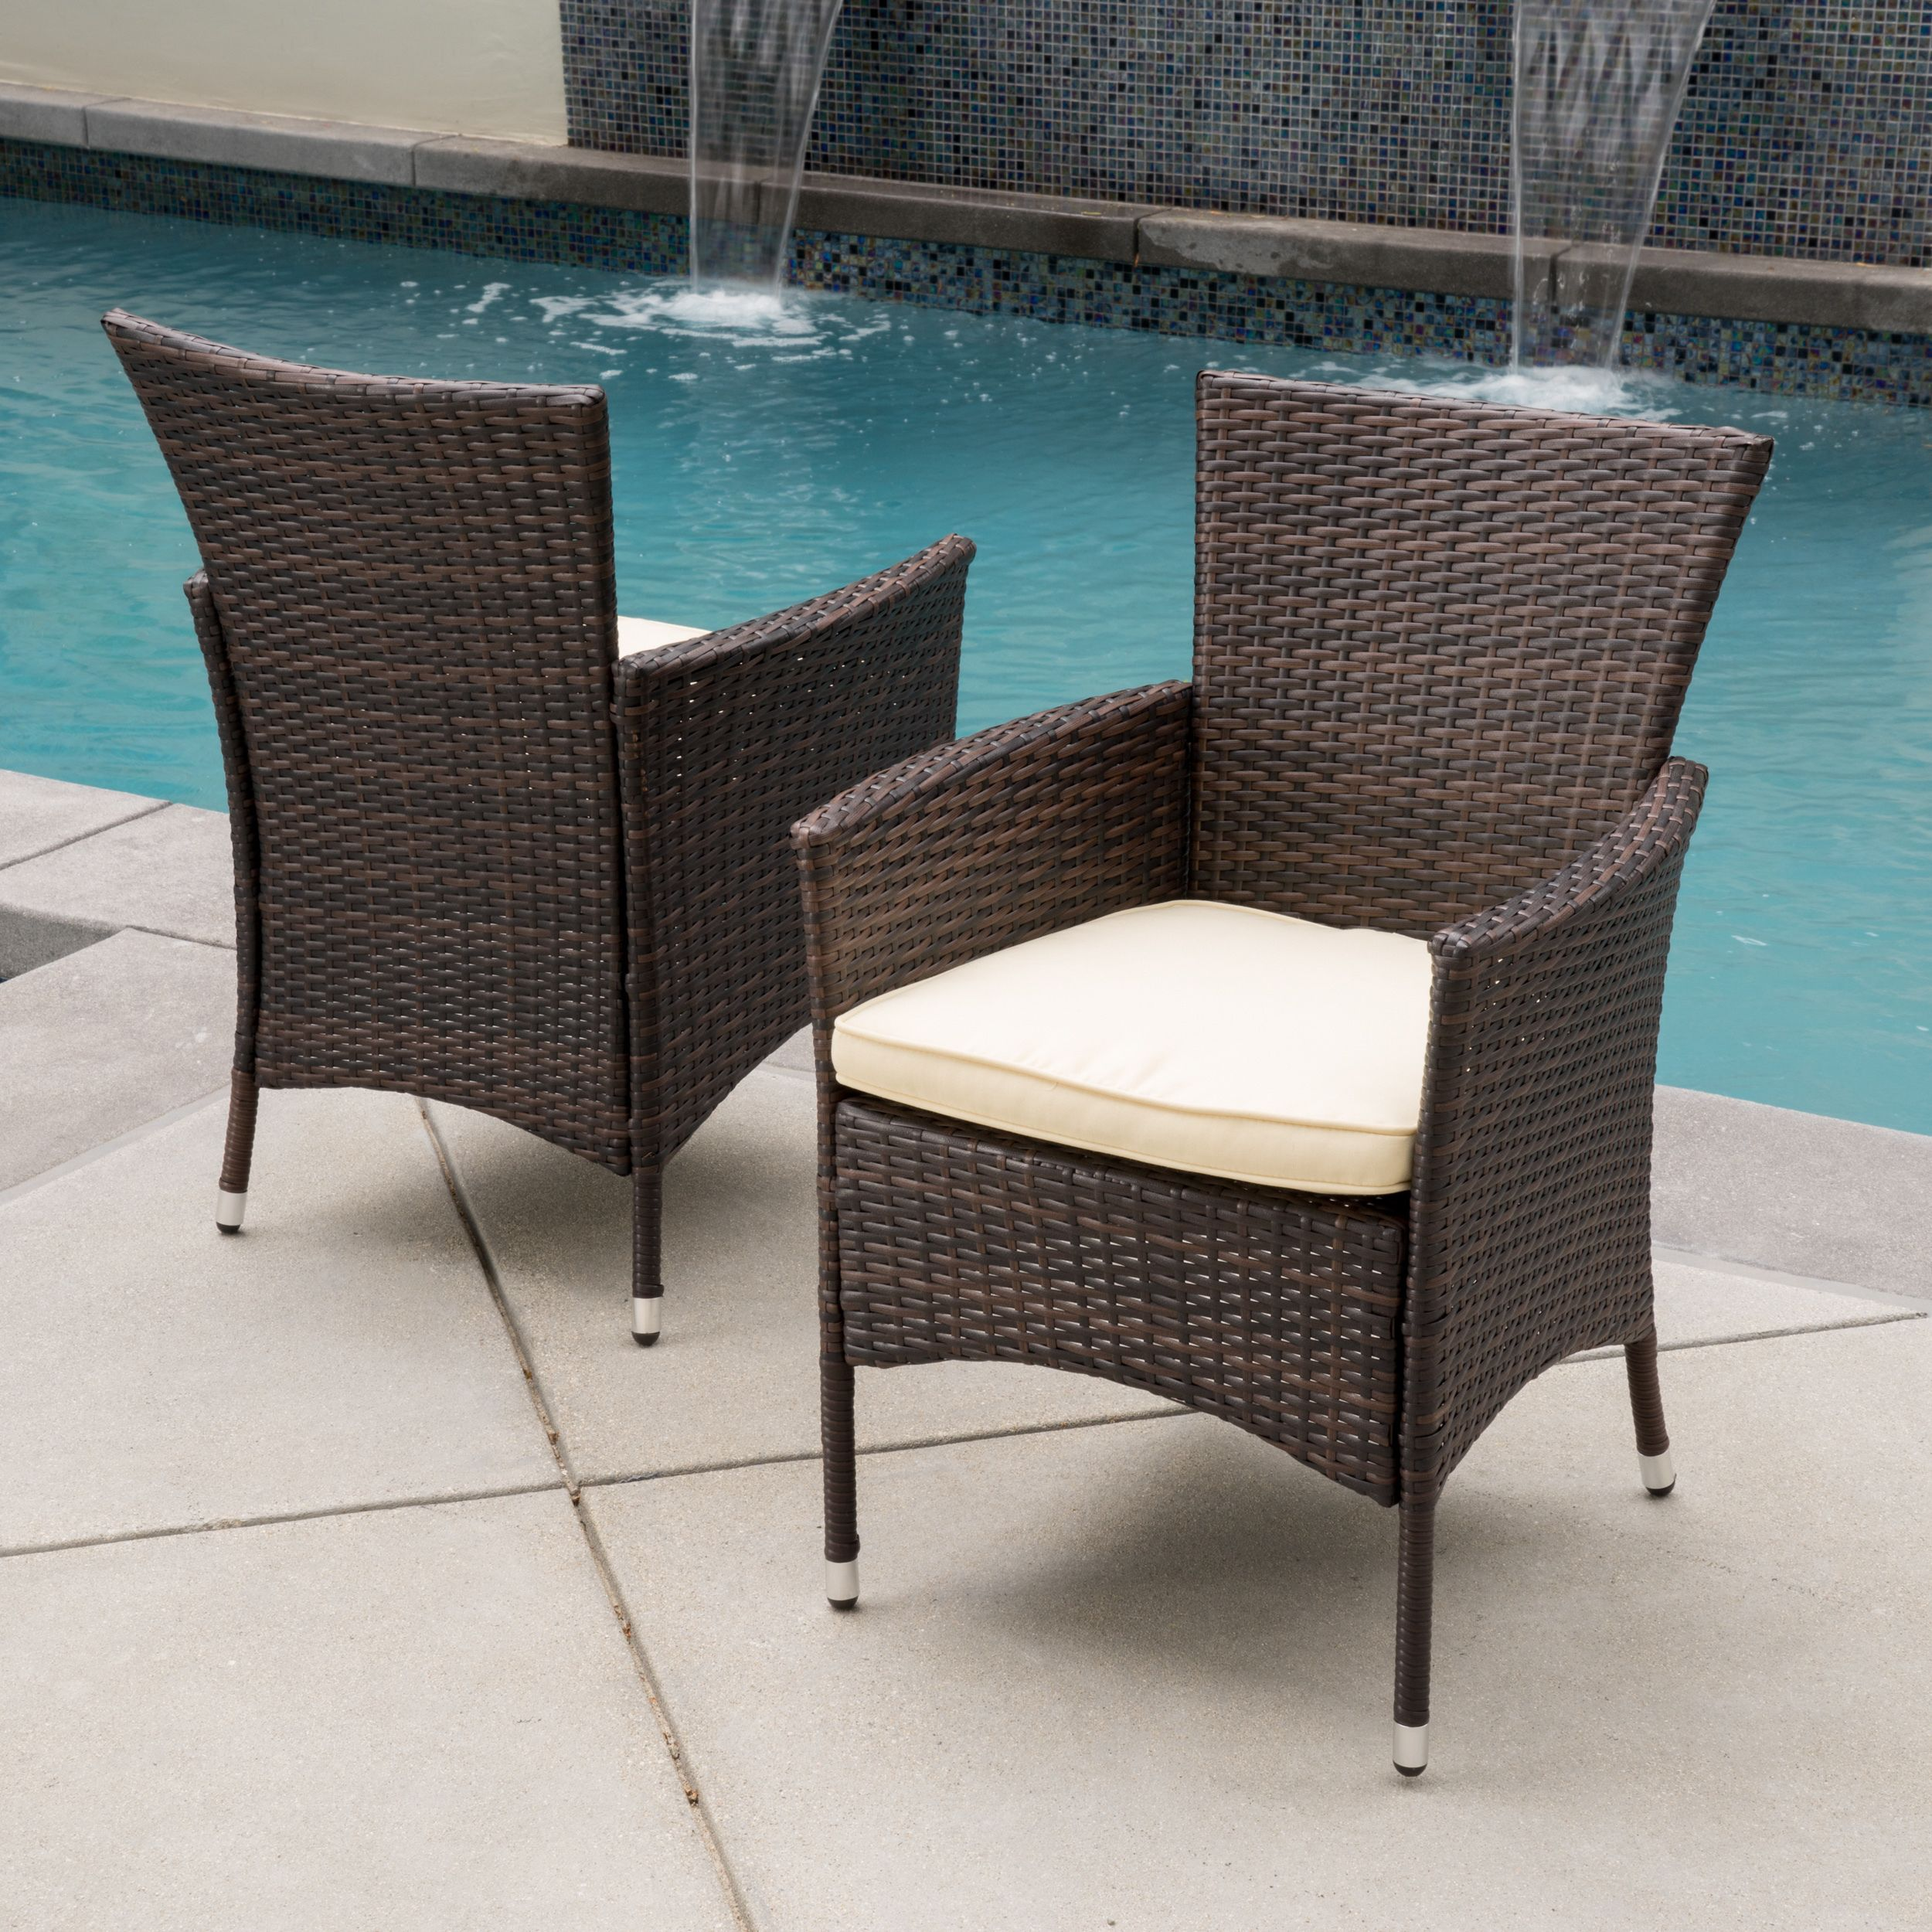 Relish the outdoors with a set of chairs just as unique as your